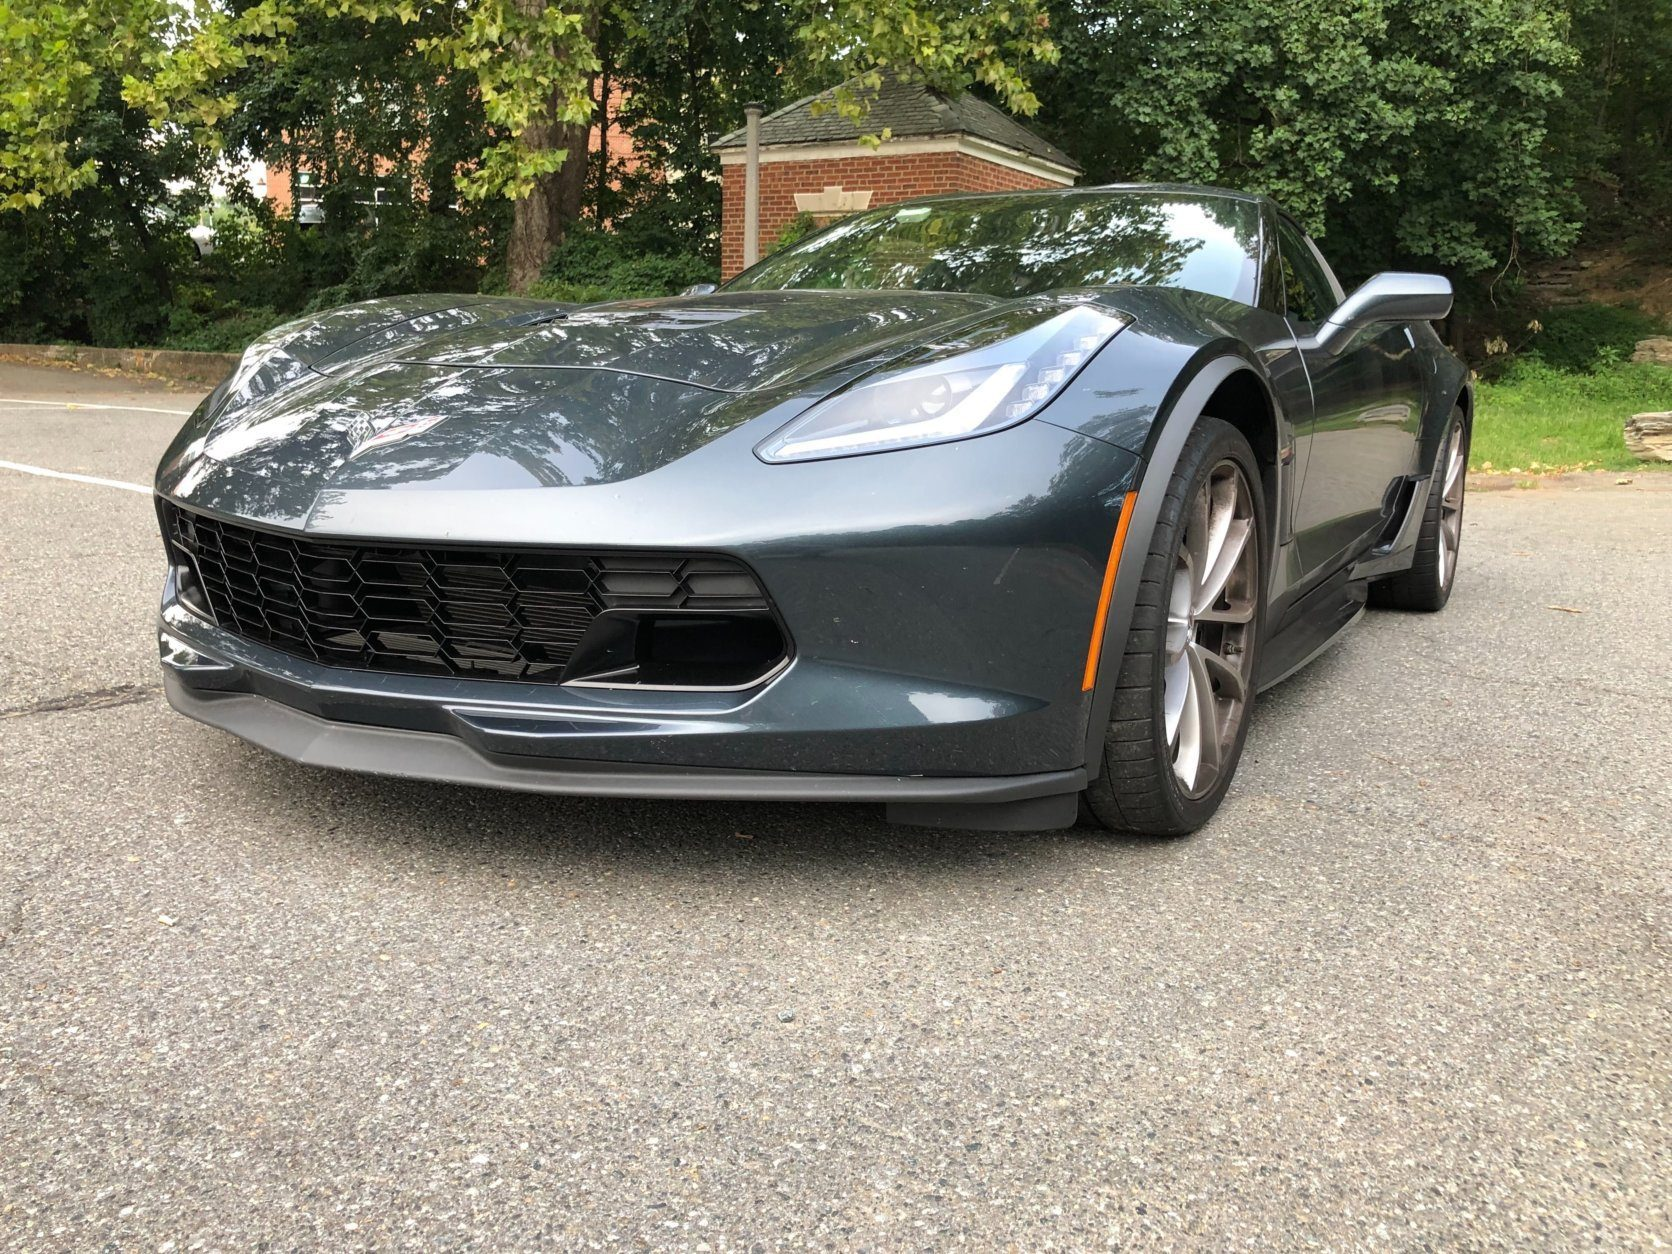 <p>The end is near for the front engine Corvette and that means a performance bargain if you act fast.</p> <p>Corvette has been fighting above its price class for years as a serious sports car that can humble other more expensive cars at tracks around the world.</p>